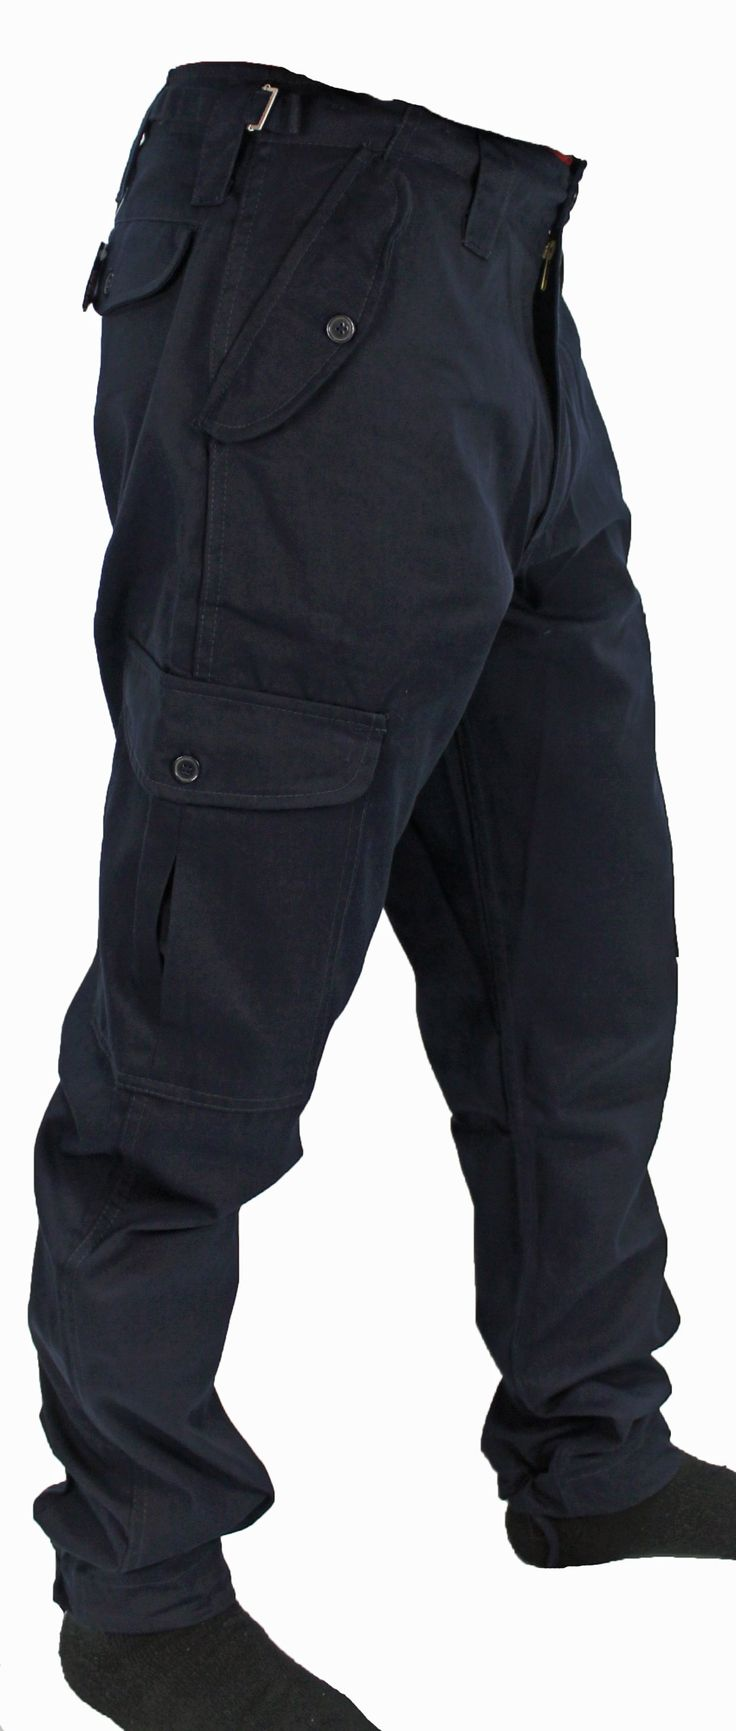 Mens Army Combat Work Trousers Pants Combats Cargo by WWK / WorkWear King: Amazon.co.uk: Clothing